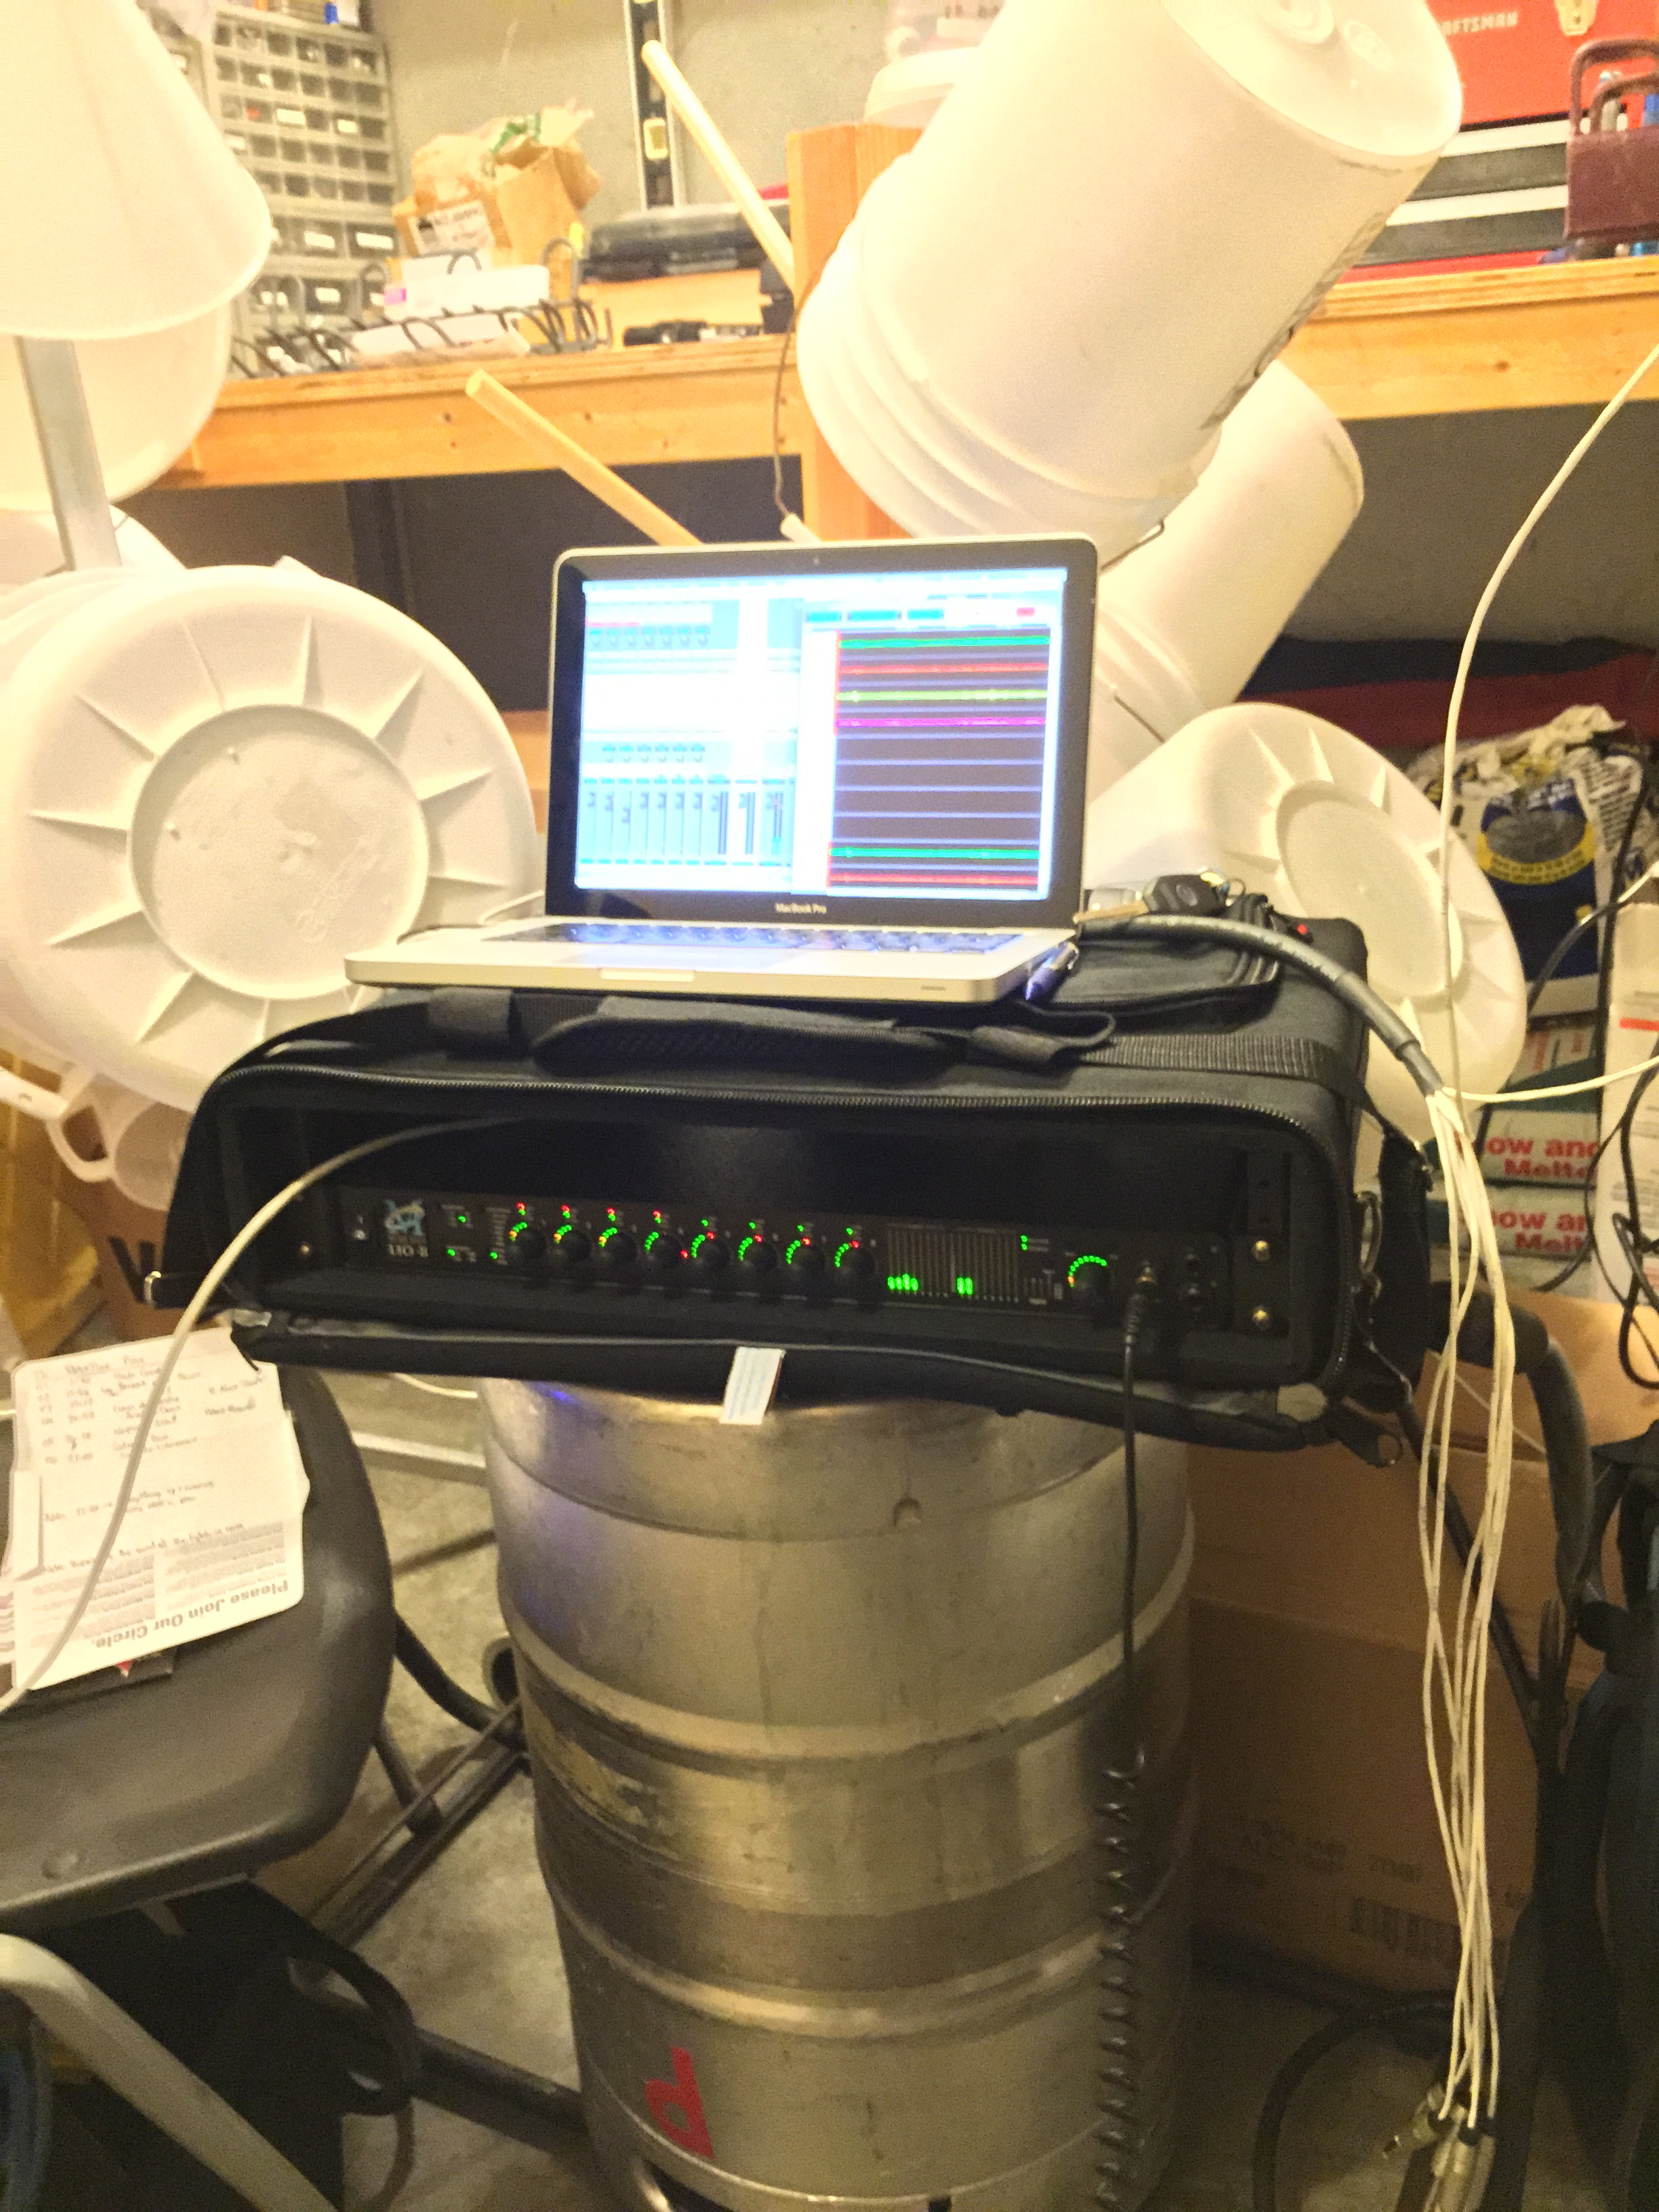 An improvised setup backstage at a winery...